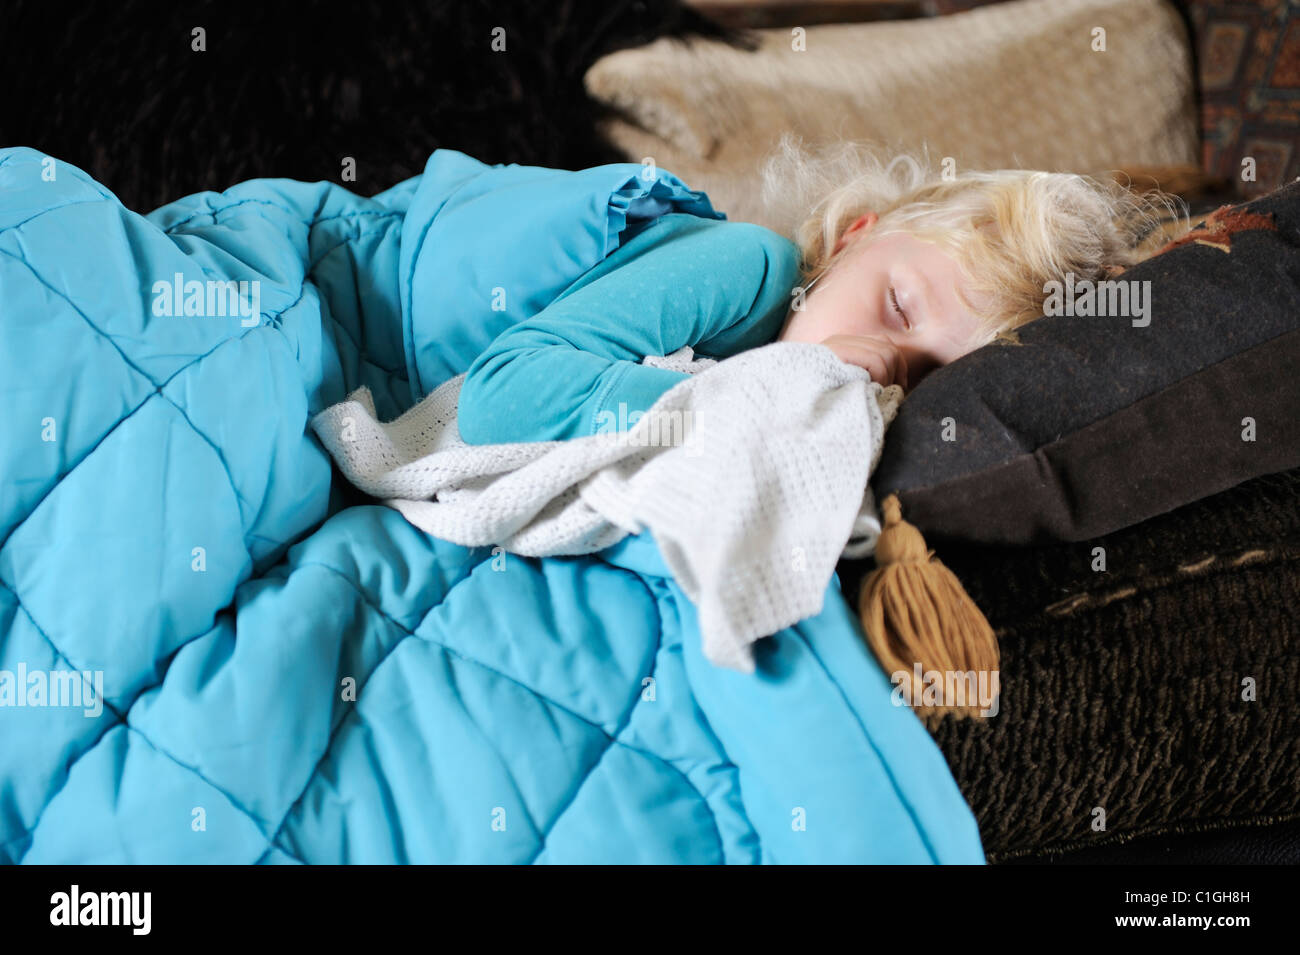 Stock photo of a poorly 5 year old girl resting on the setee. - Stock Image